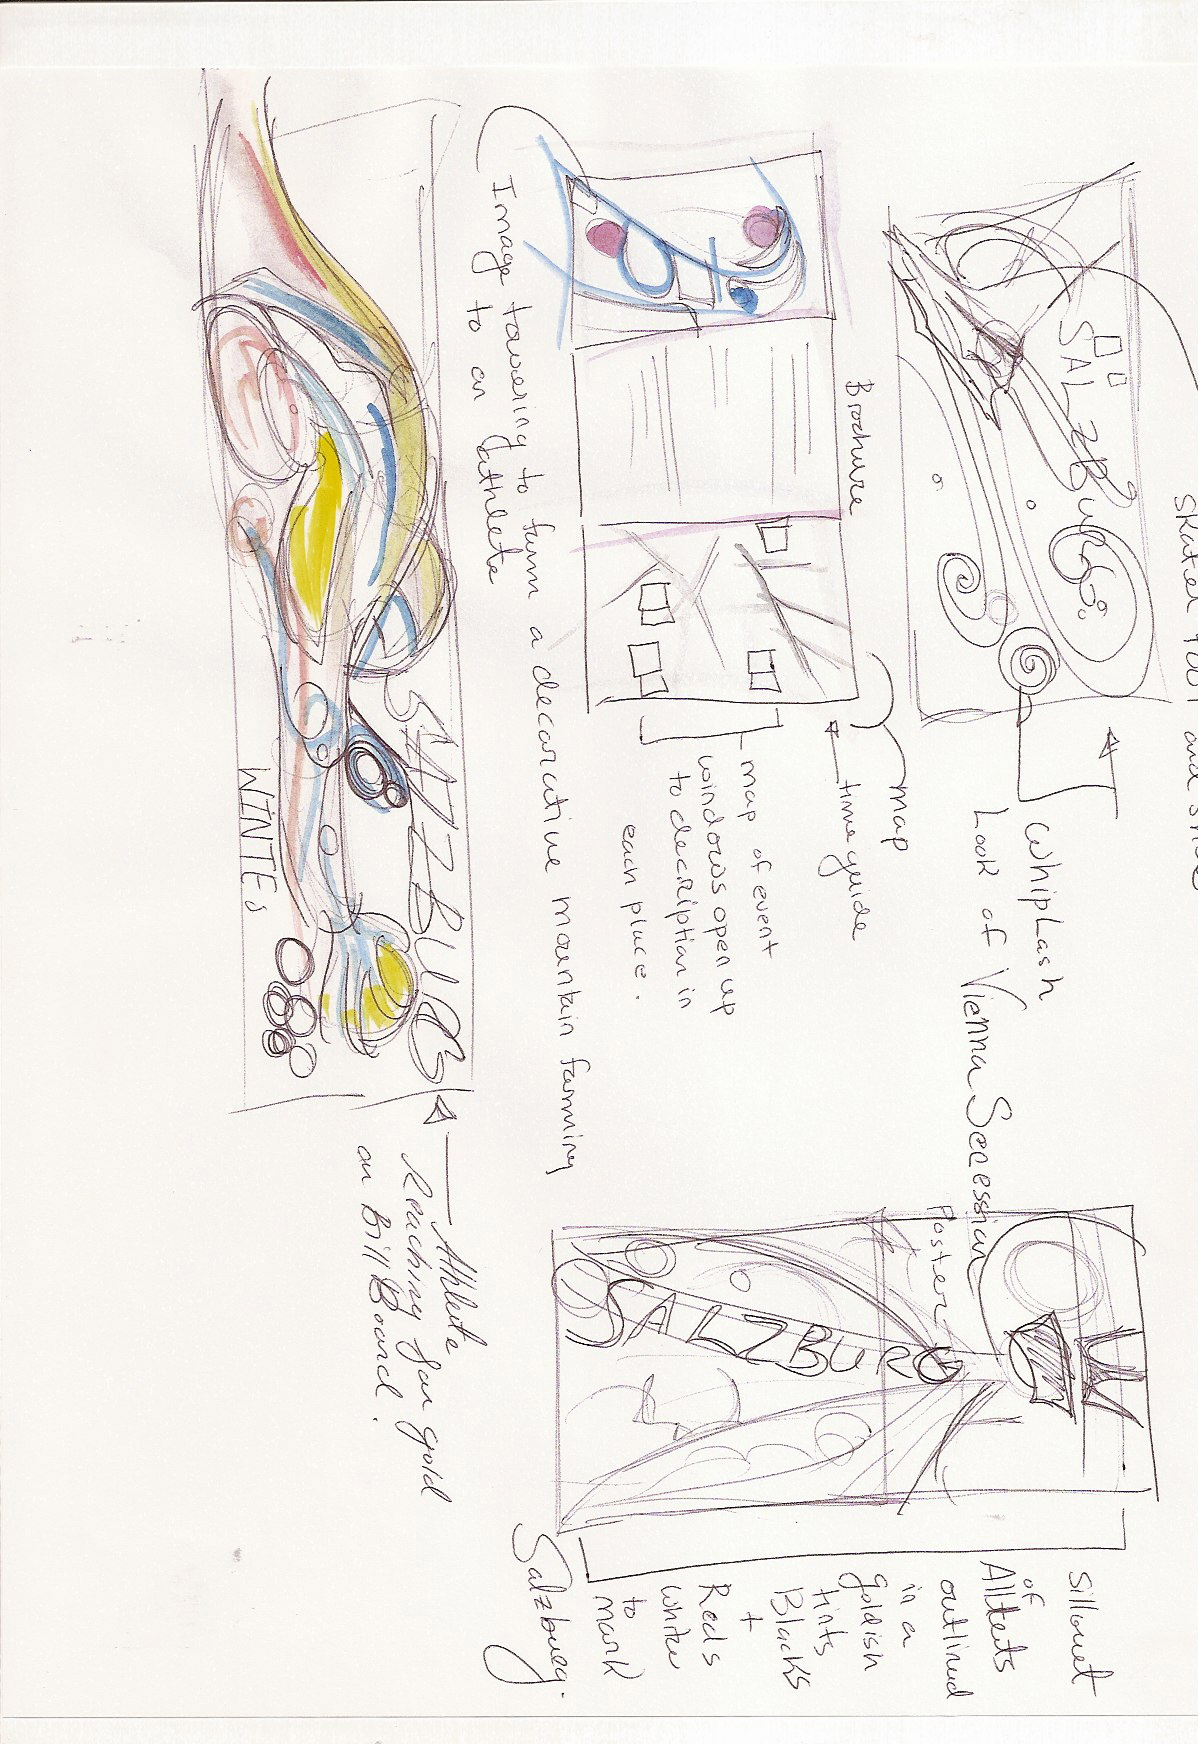 Thumbnails for olympic promotion of the games Salzburg